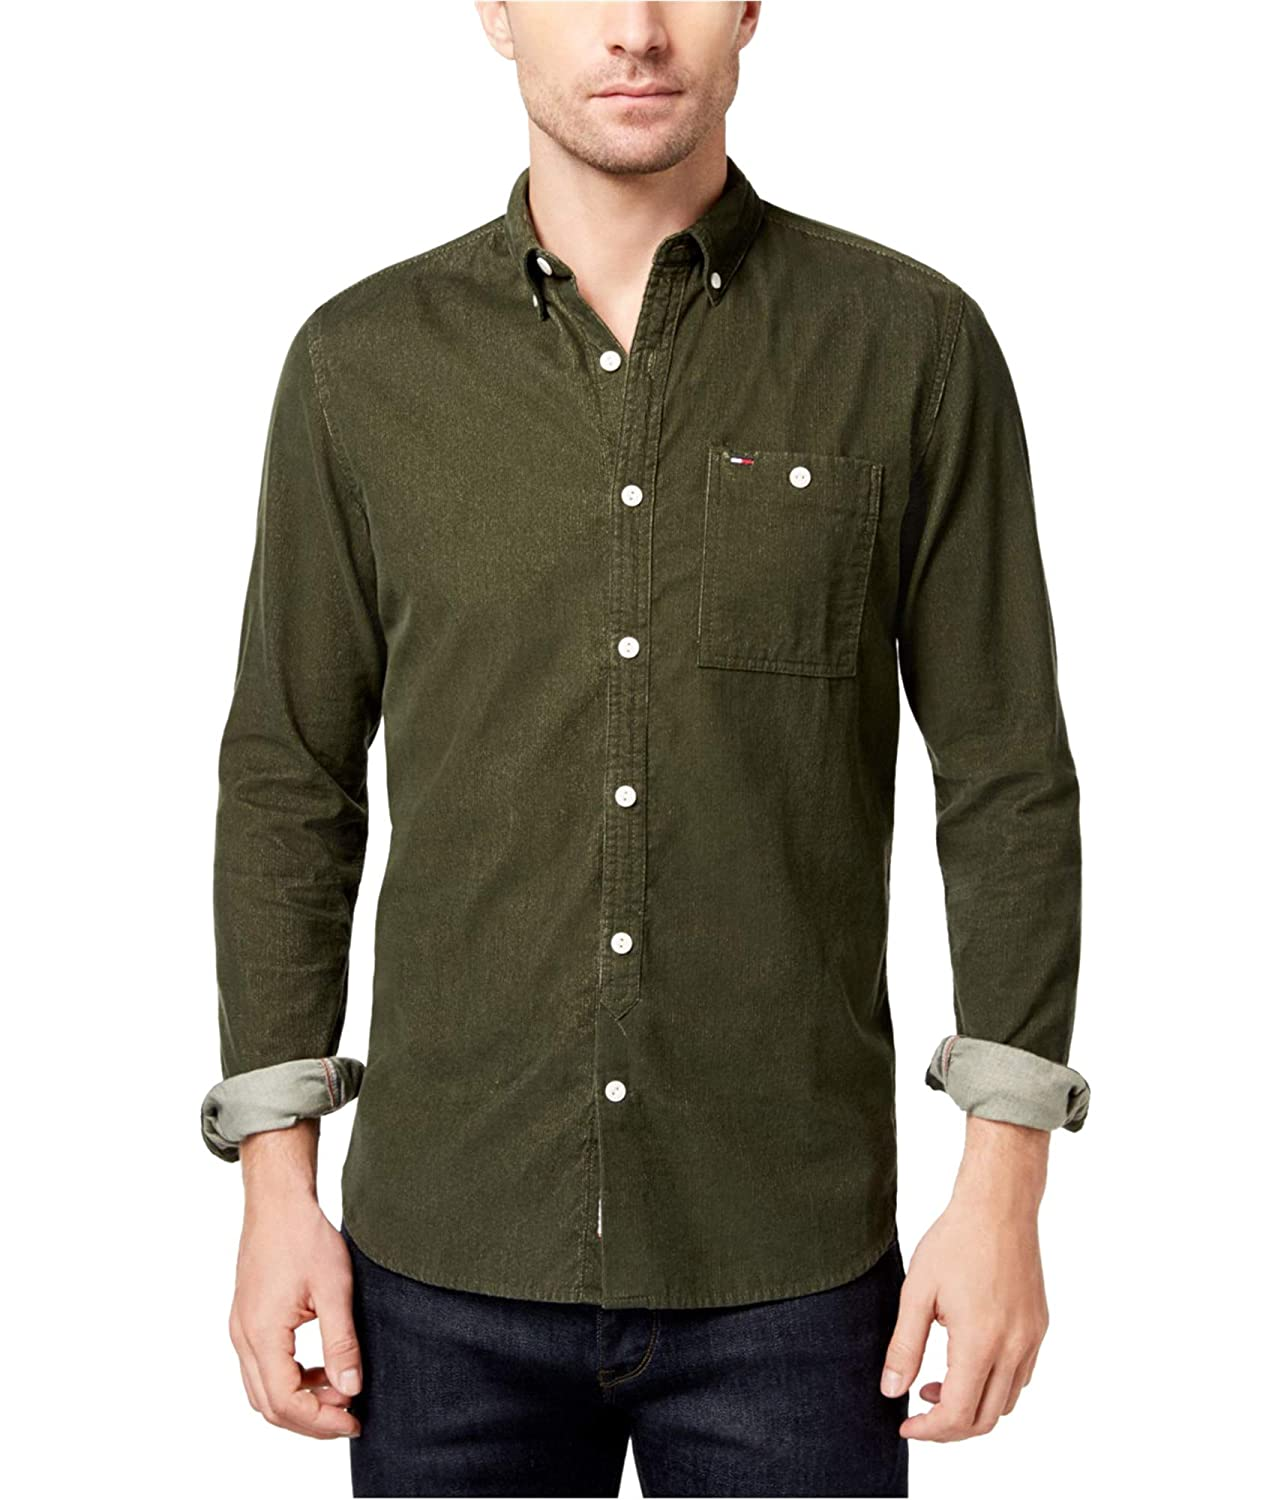 Tommy Hilfiger Mens Raleigh Corduroy Button Up Shirt